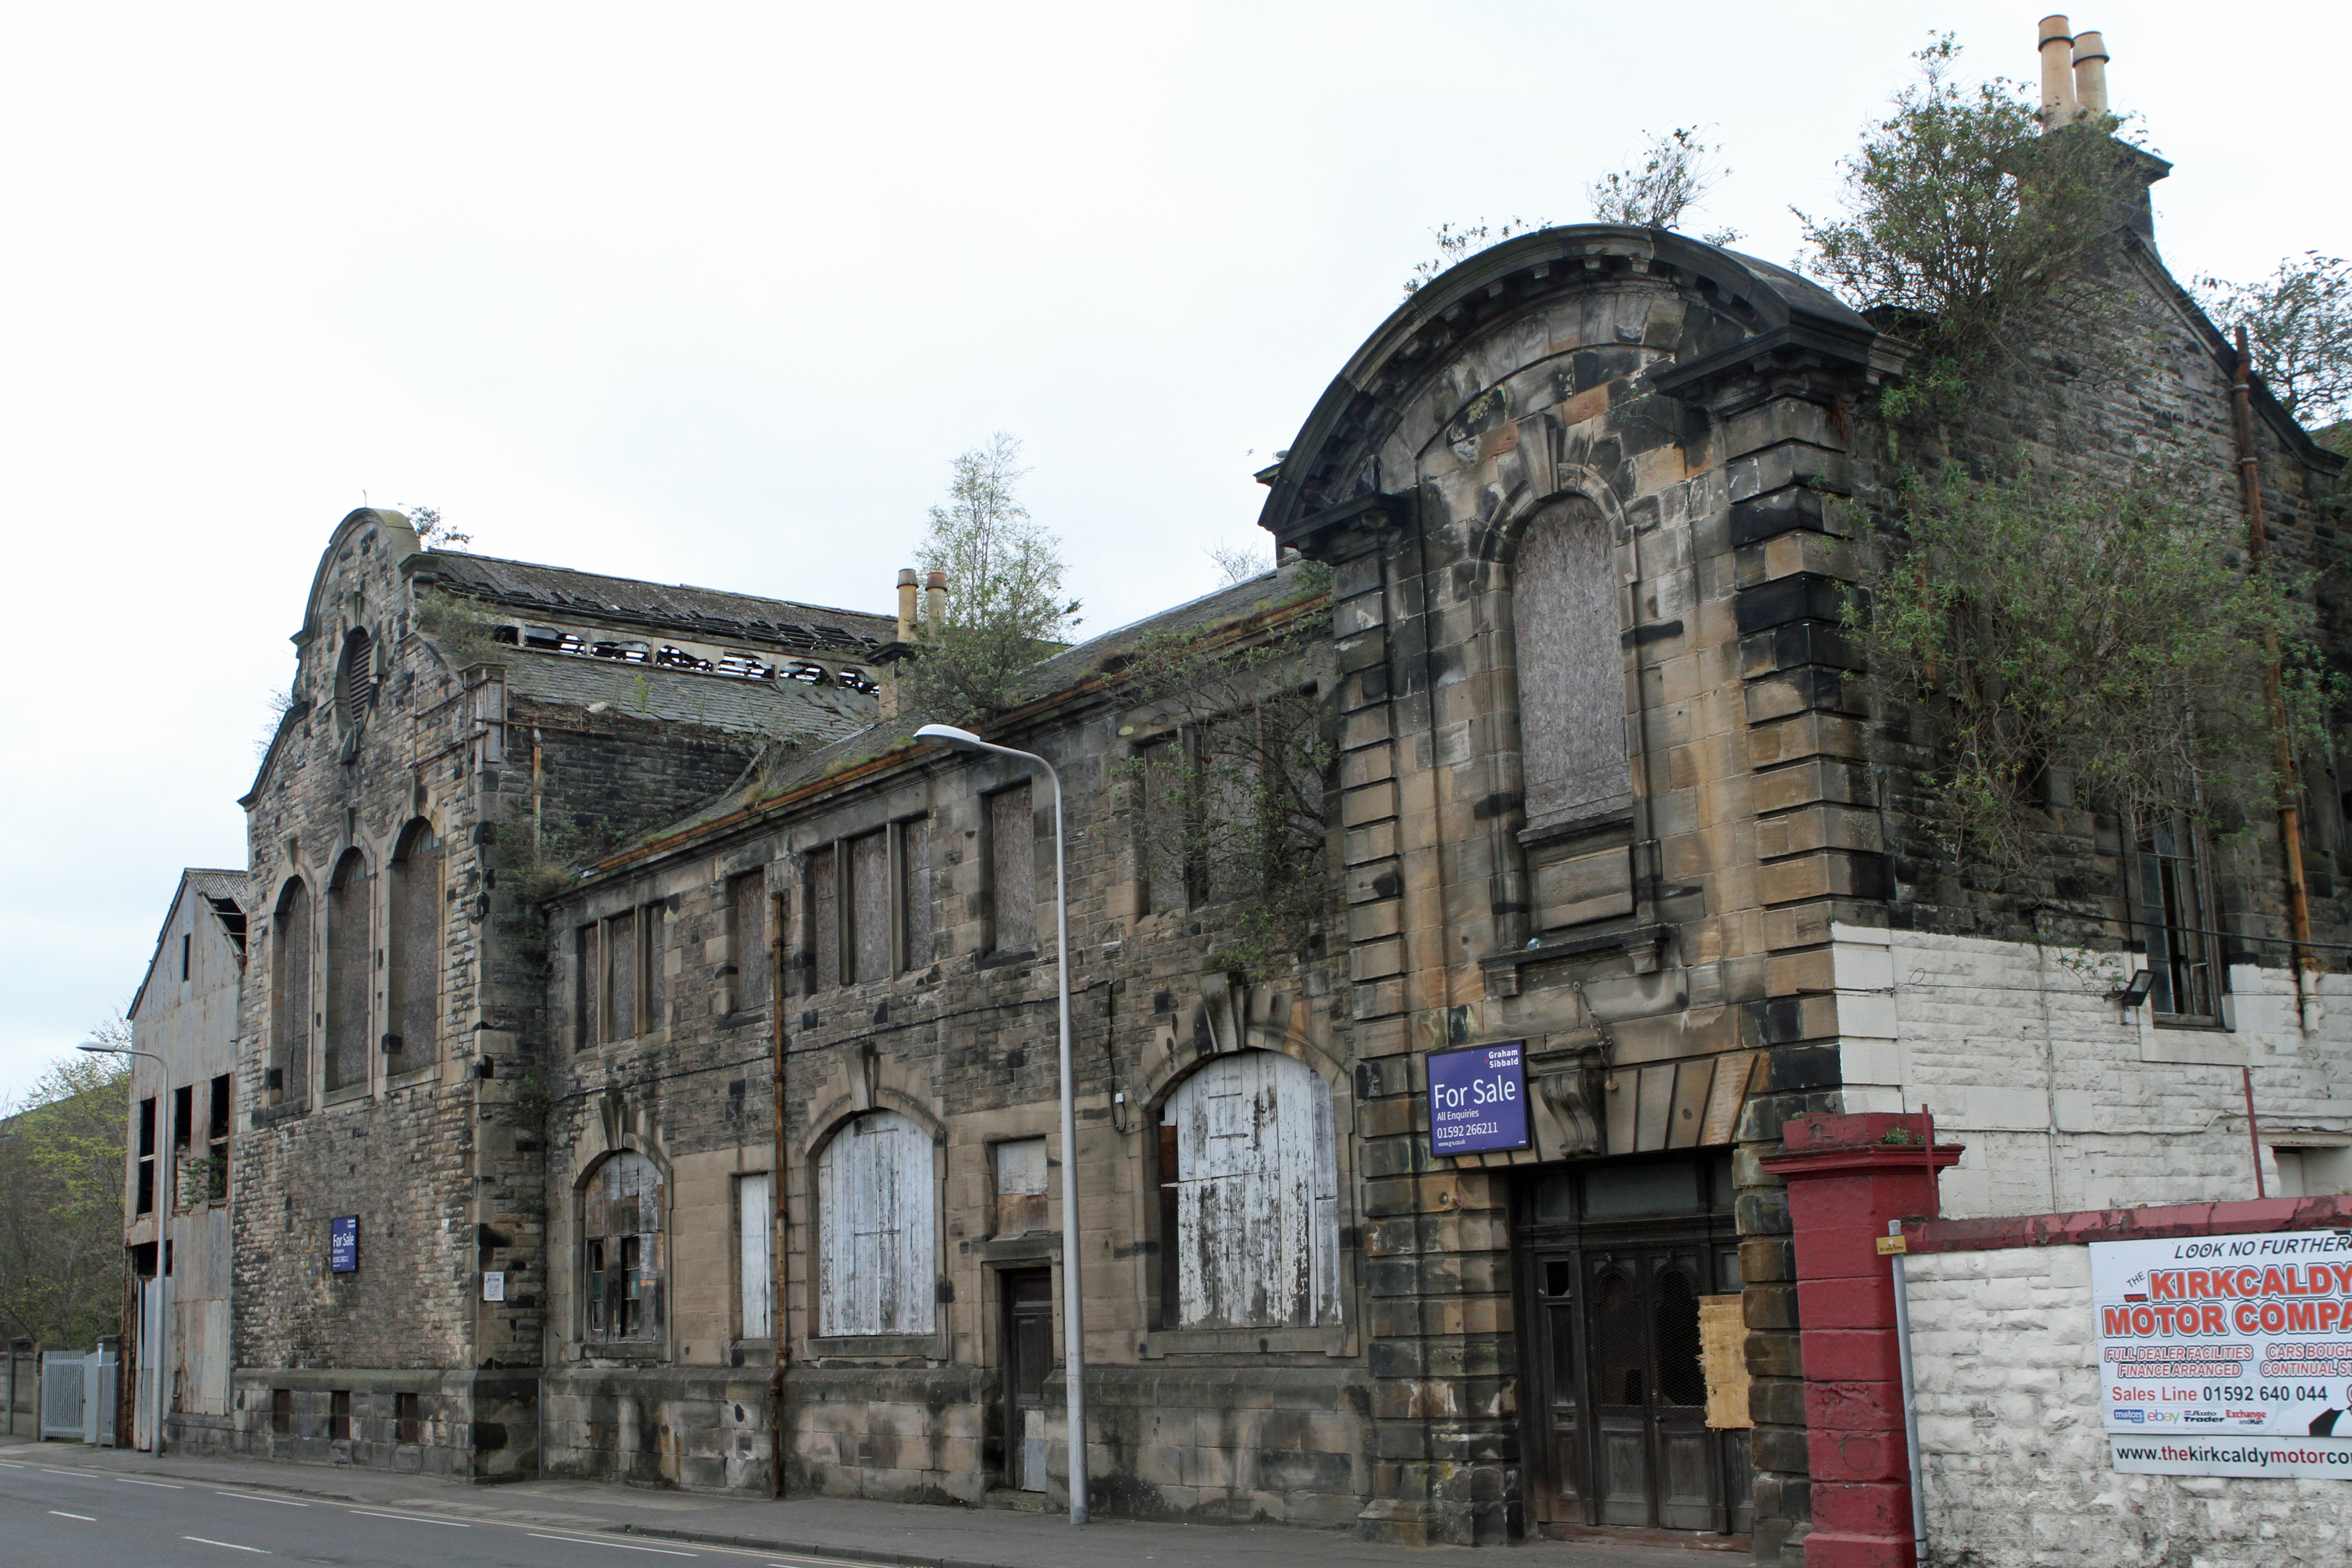 The exterior of the Victoria Power Station.